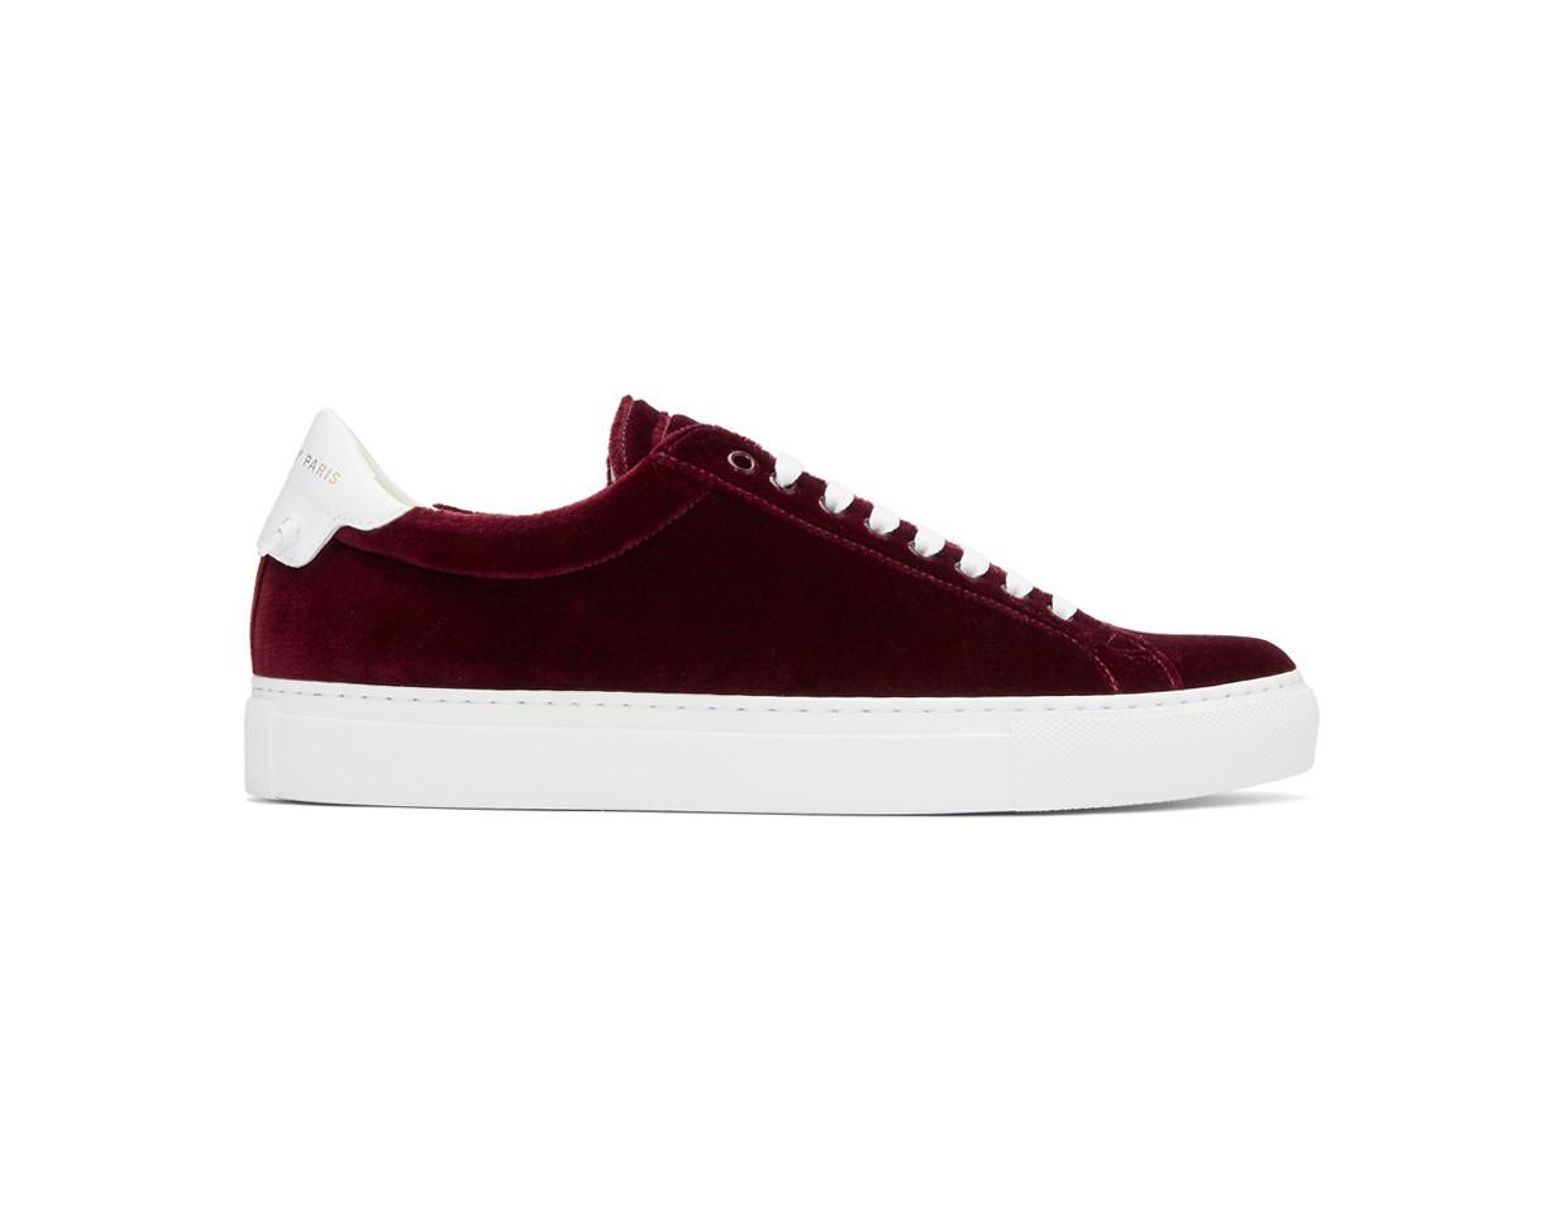 best service 3d6c0 c9515 Givenchy Burgundy Velvet Urban Knots Sneakers in Red for Men - Save 40% -  Lyst